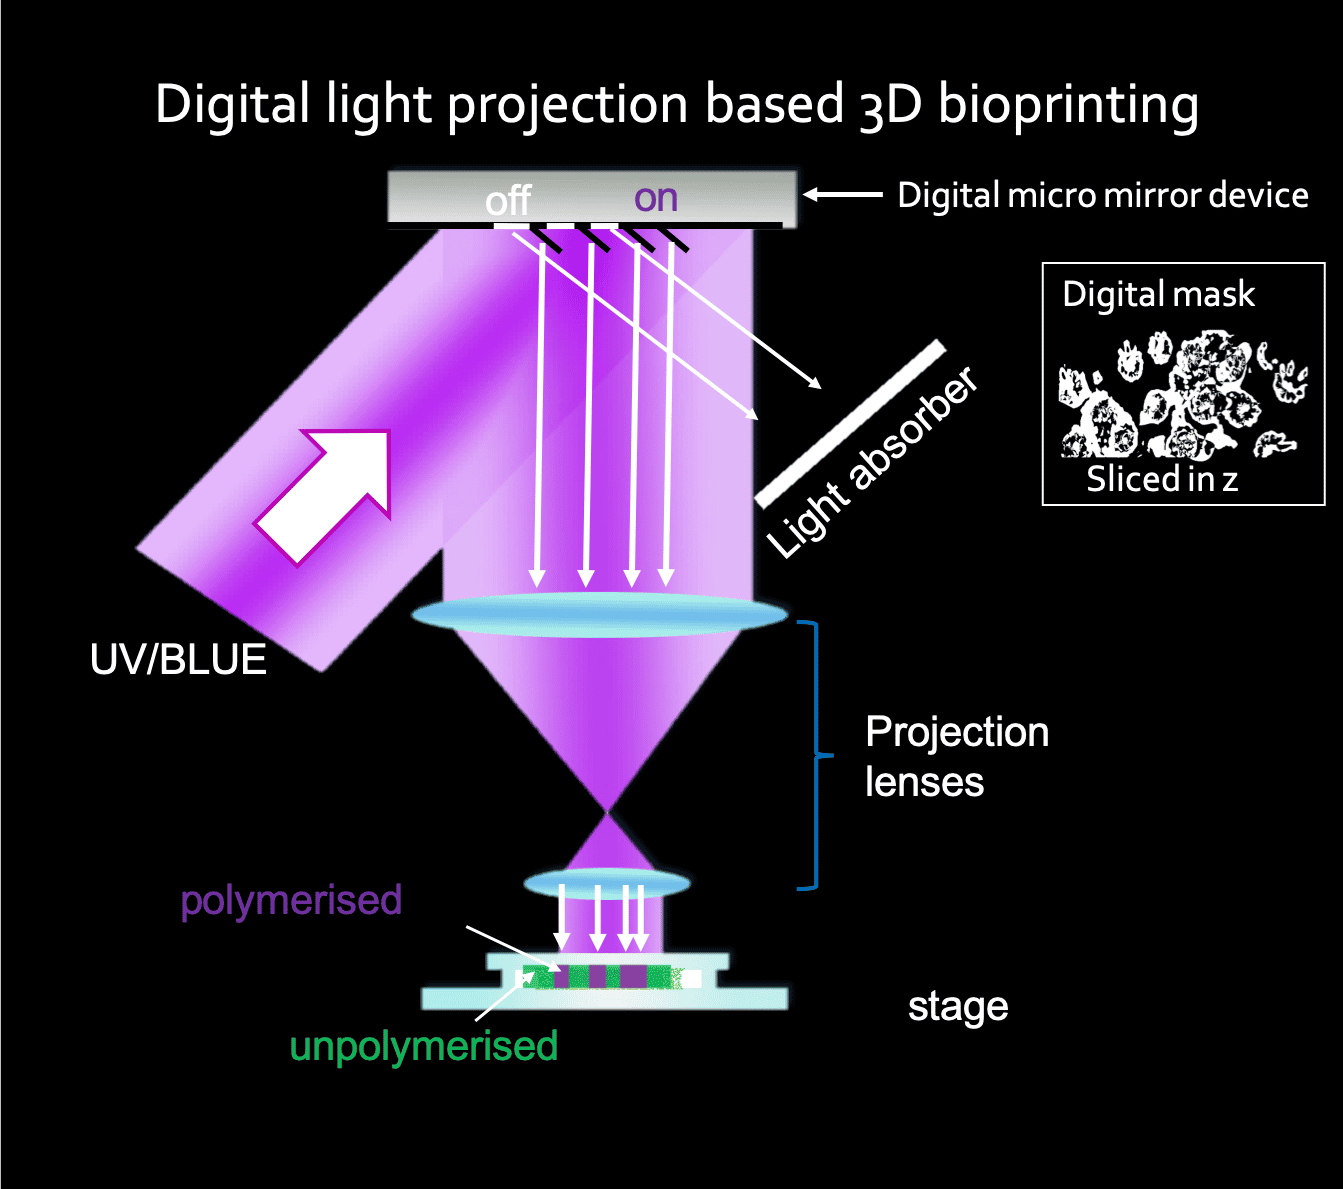 Light projection based 3D bioprinting